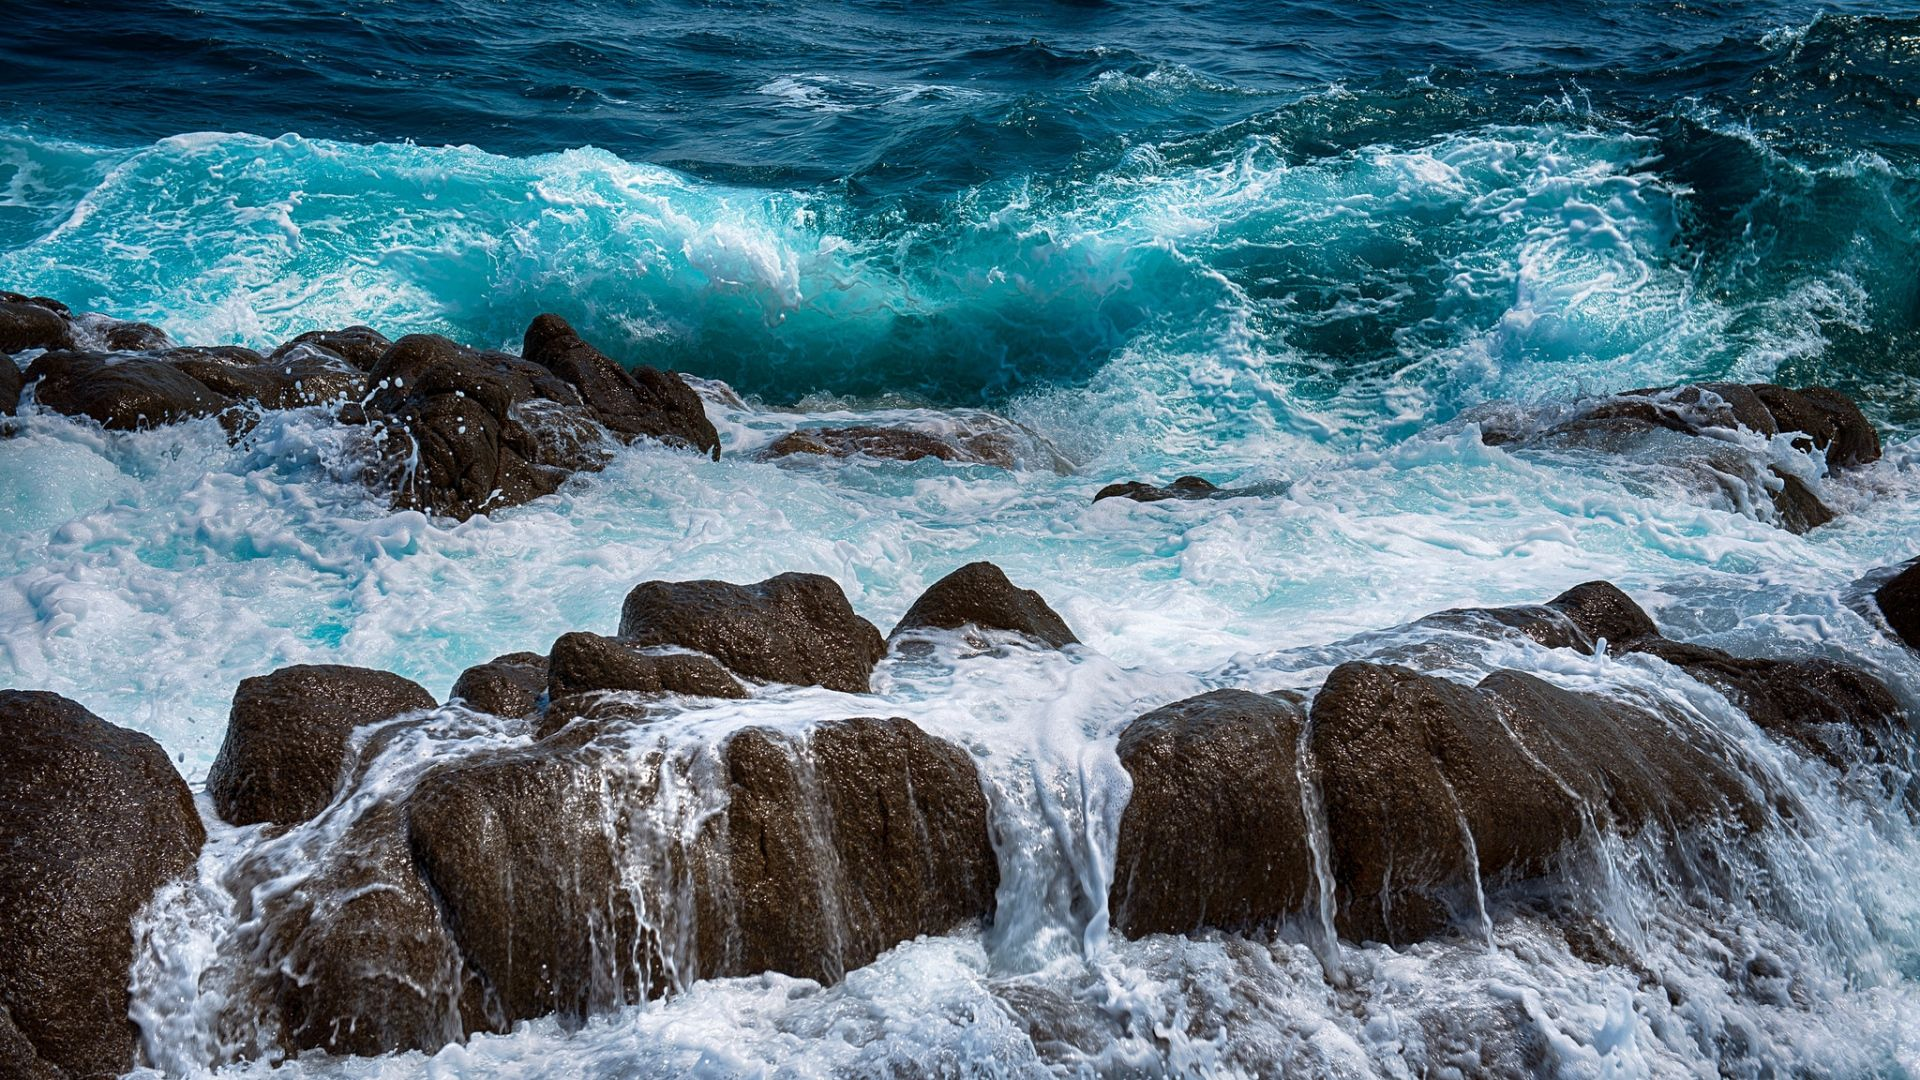 download wallpaper 1920x1080 sea, rocks, spray, surf, foam full hd